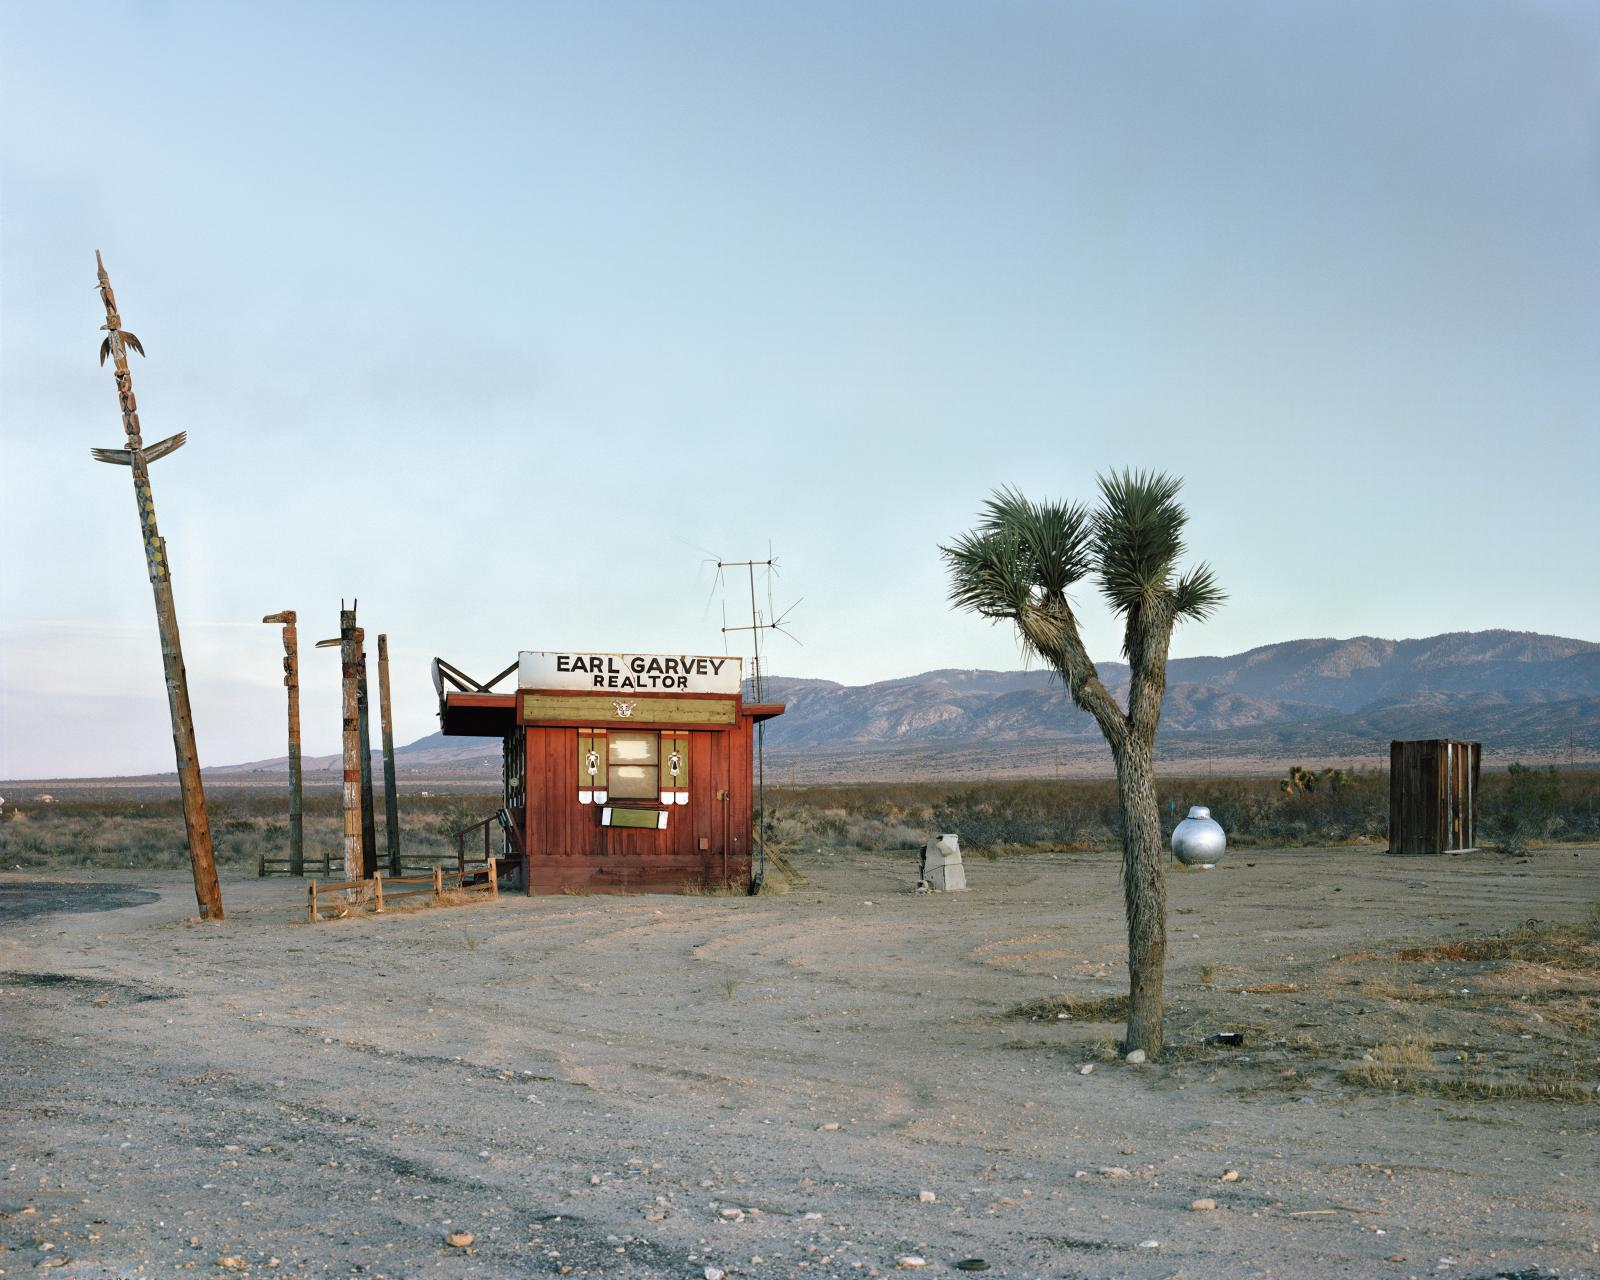 Joel Sternfeld (né en 1944), Earl Garvey Realtor, The Mojave Desert, California, July 1979, tirage C-Print, 106 x 133 cm.Courtesy of the a